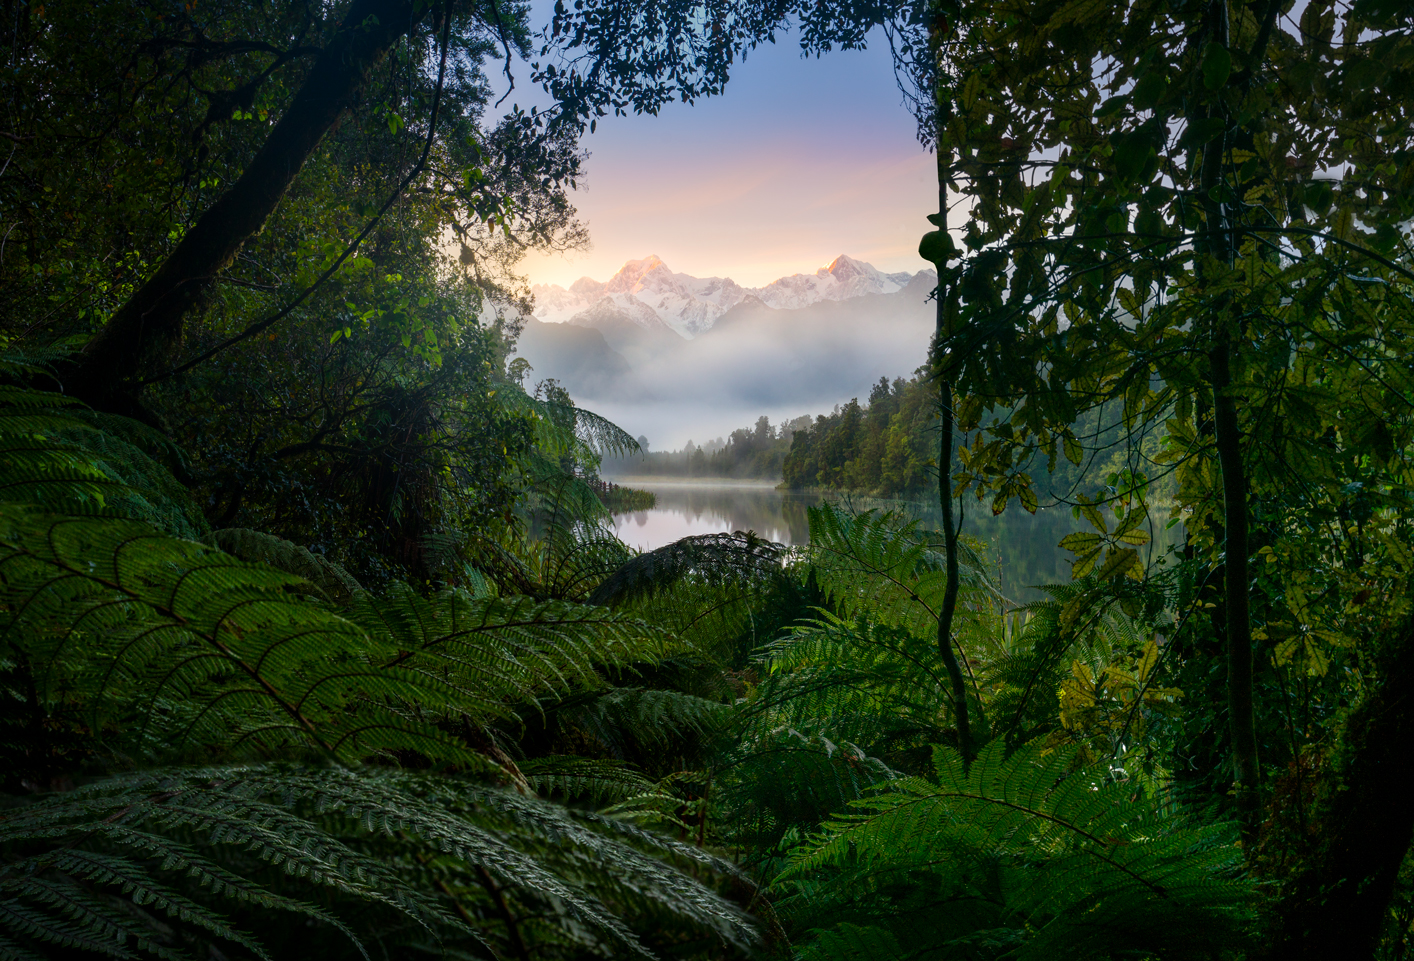 Sunrise, Mount Cook and Mount Tasman